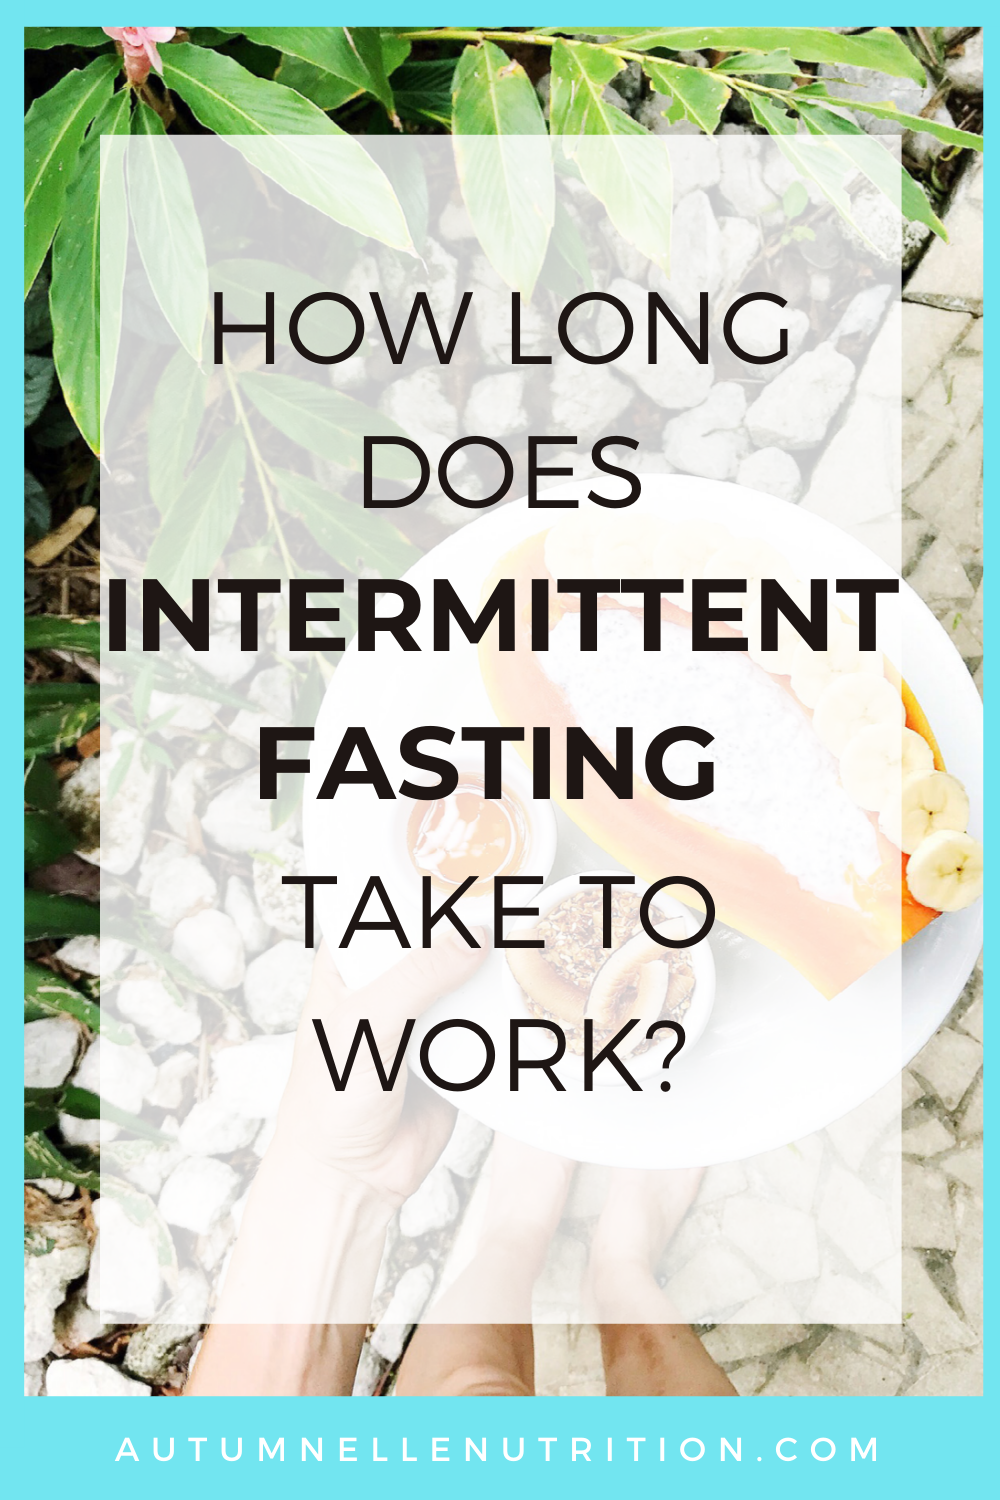 How Long Does Intermittent Fasting Take To Work?